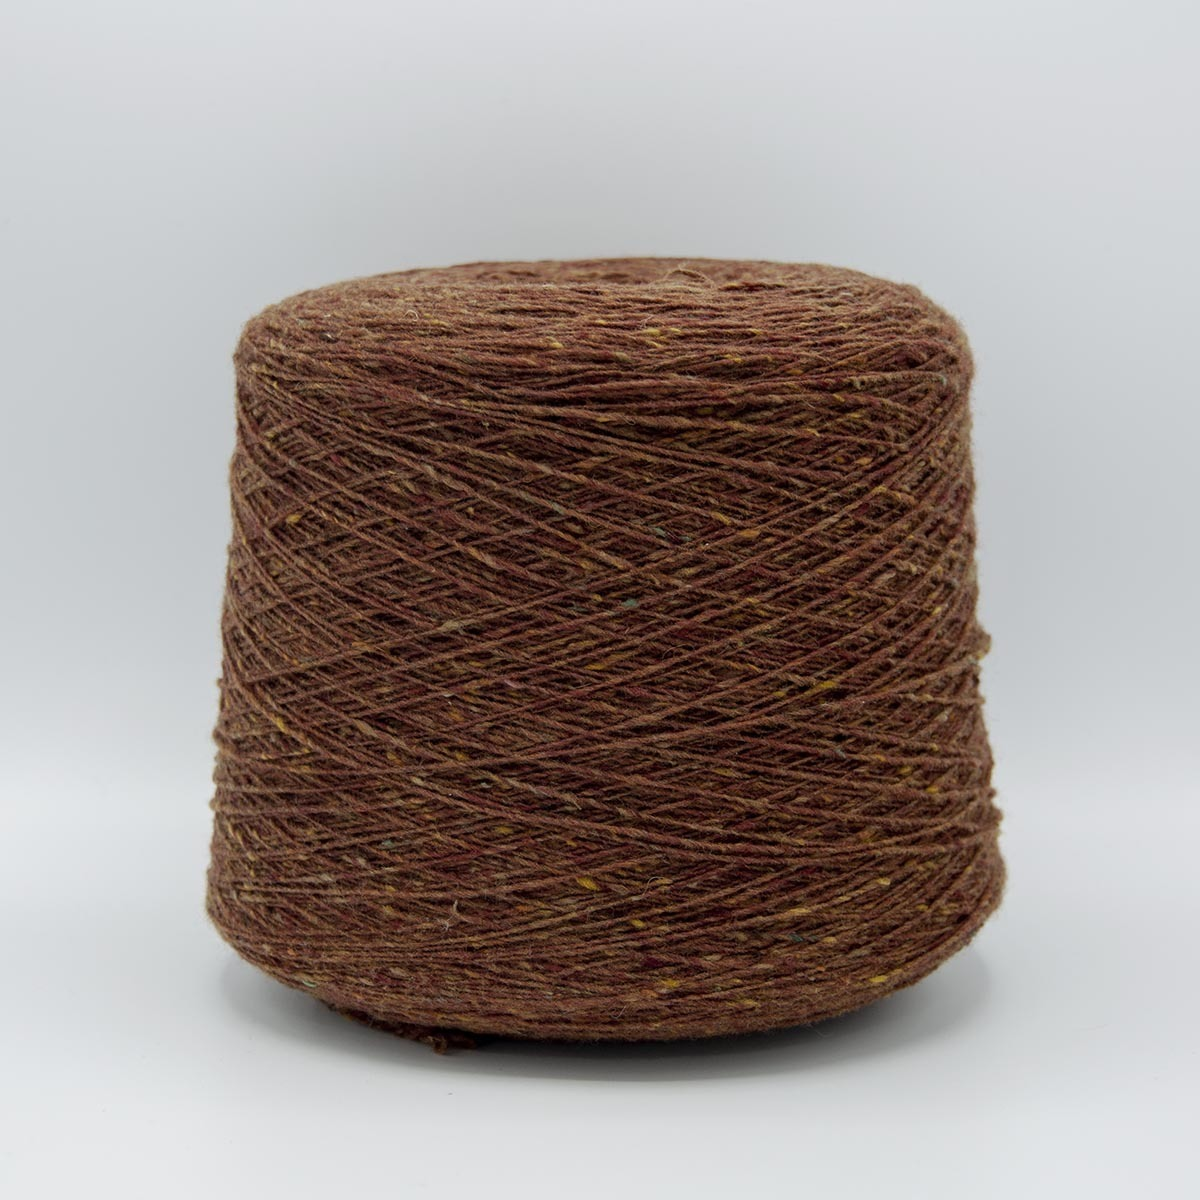 Knoll Yarns Soft Donegal (одинарный твид) - 5549